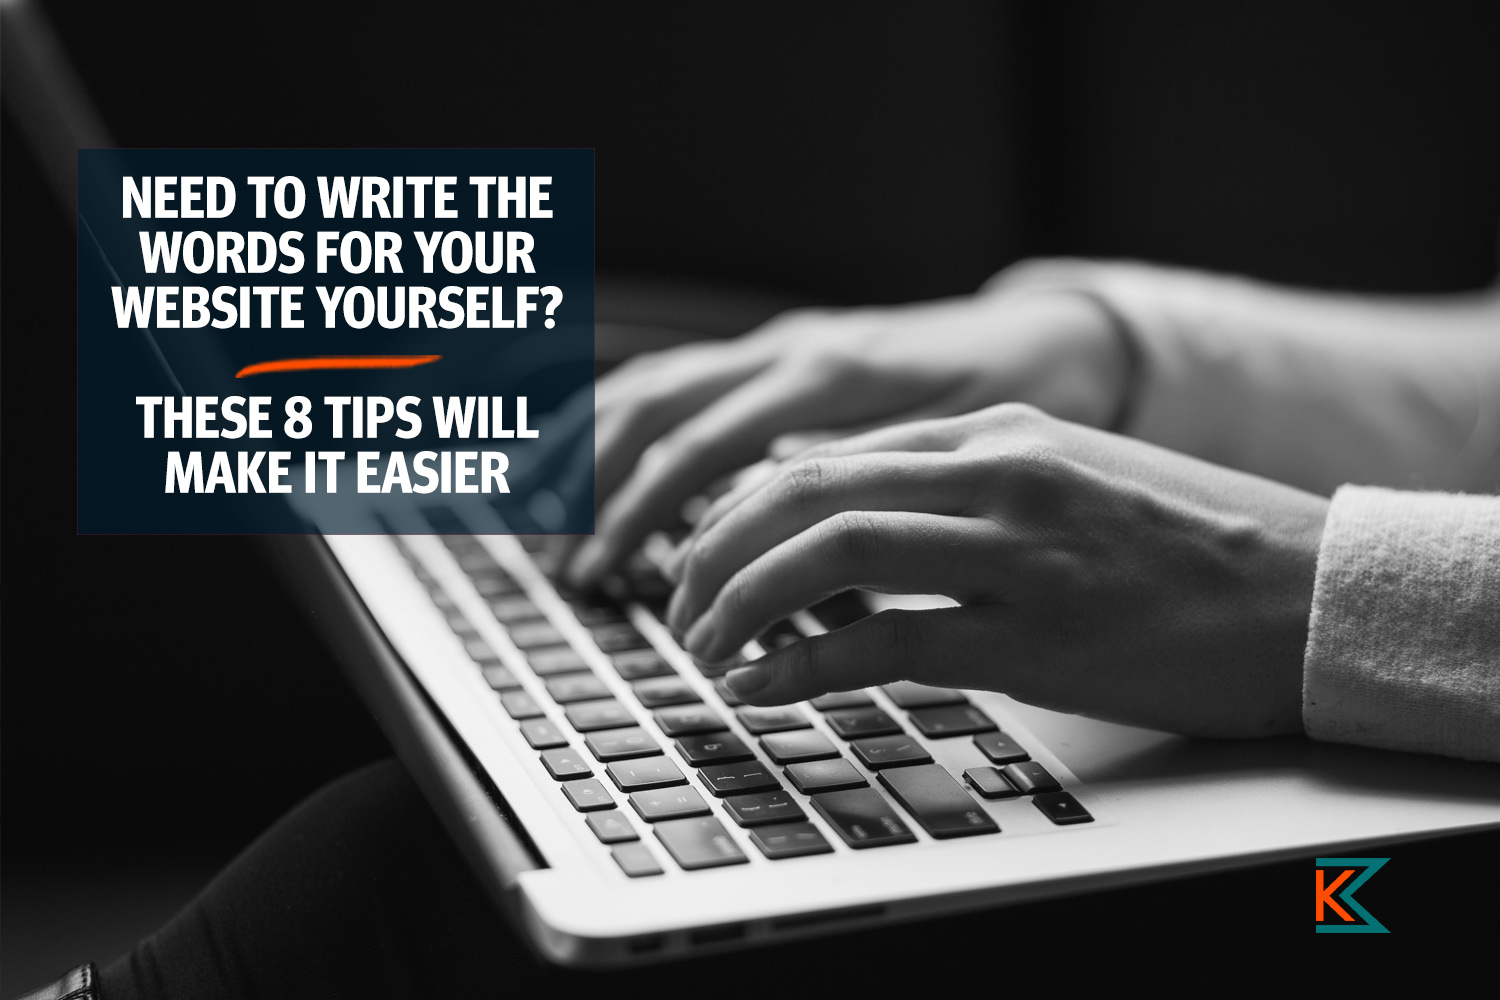 Tips for writing website content yourself